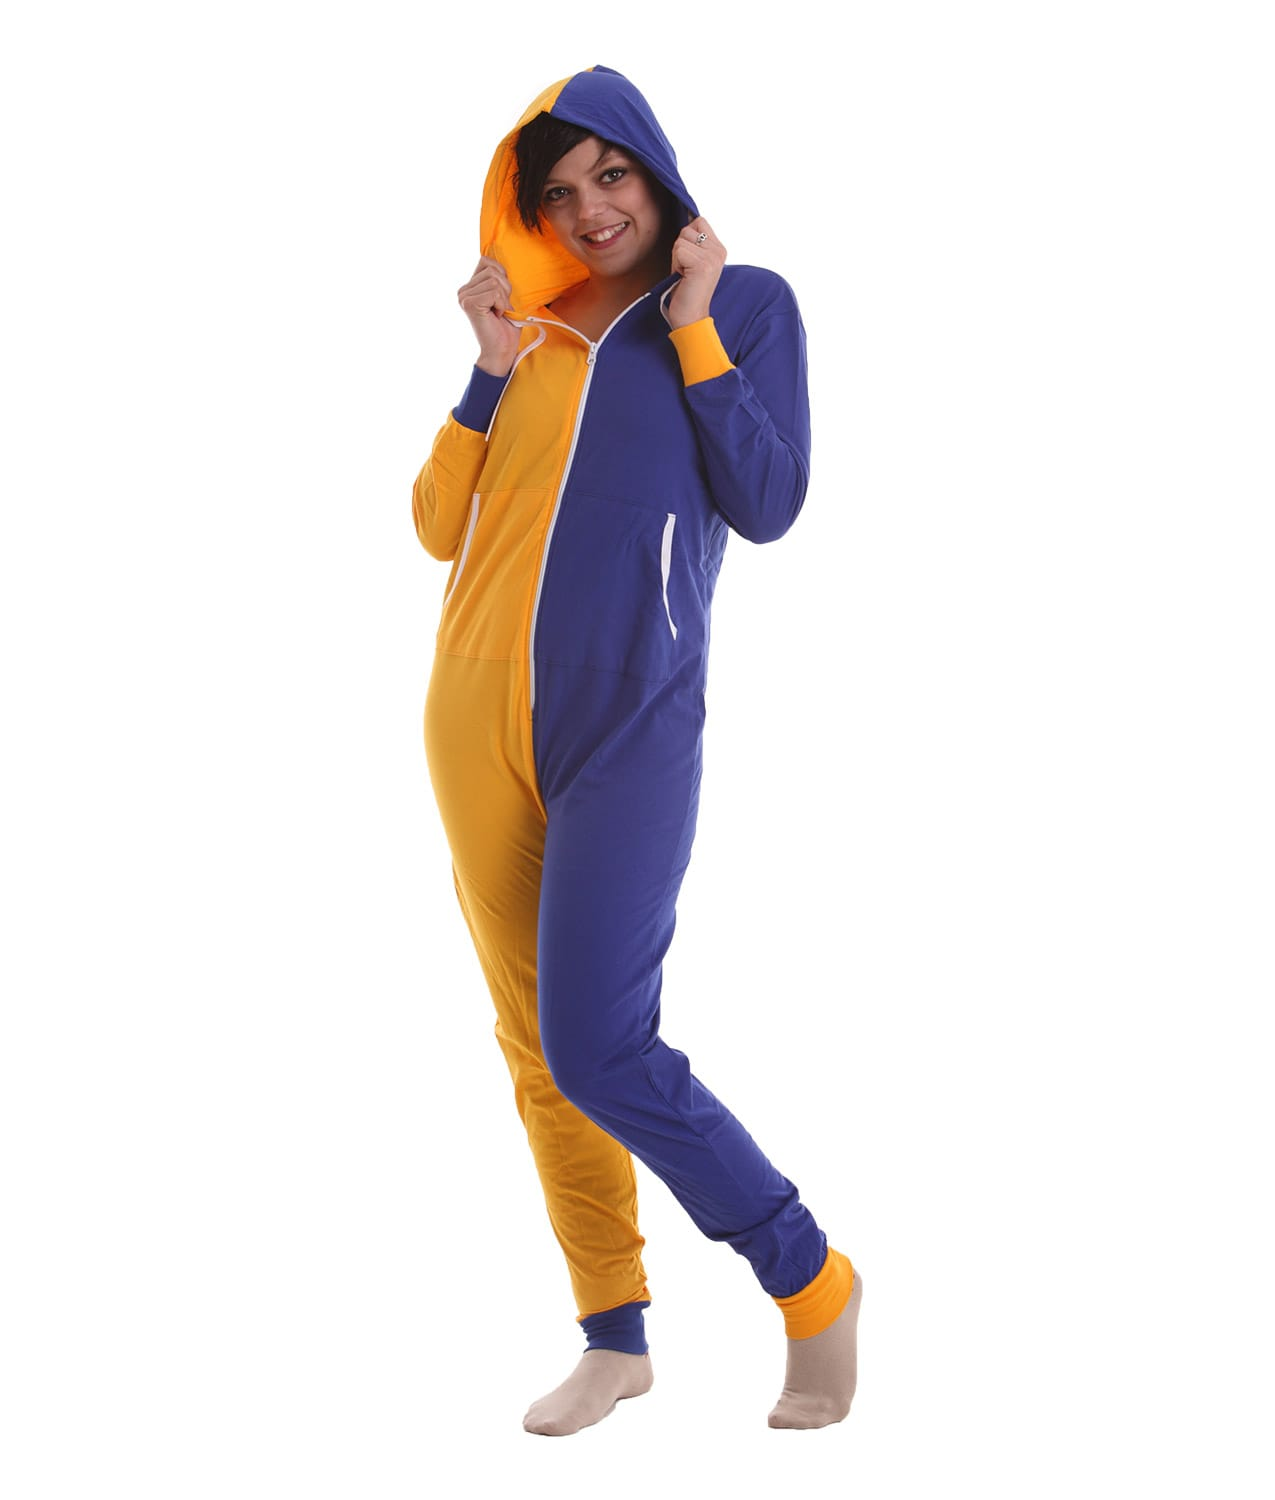 Shop for adult hooded onesie online at Target. Free shipping on purchases over $35 and save 5% every day with your Target REDcard.